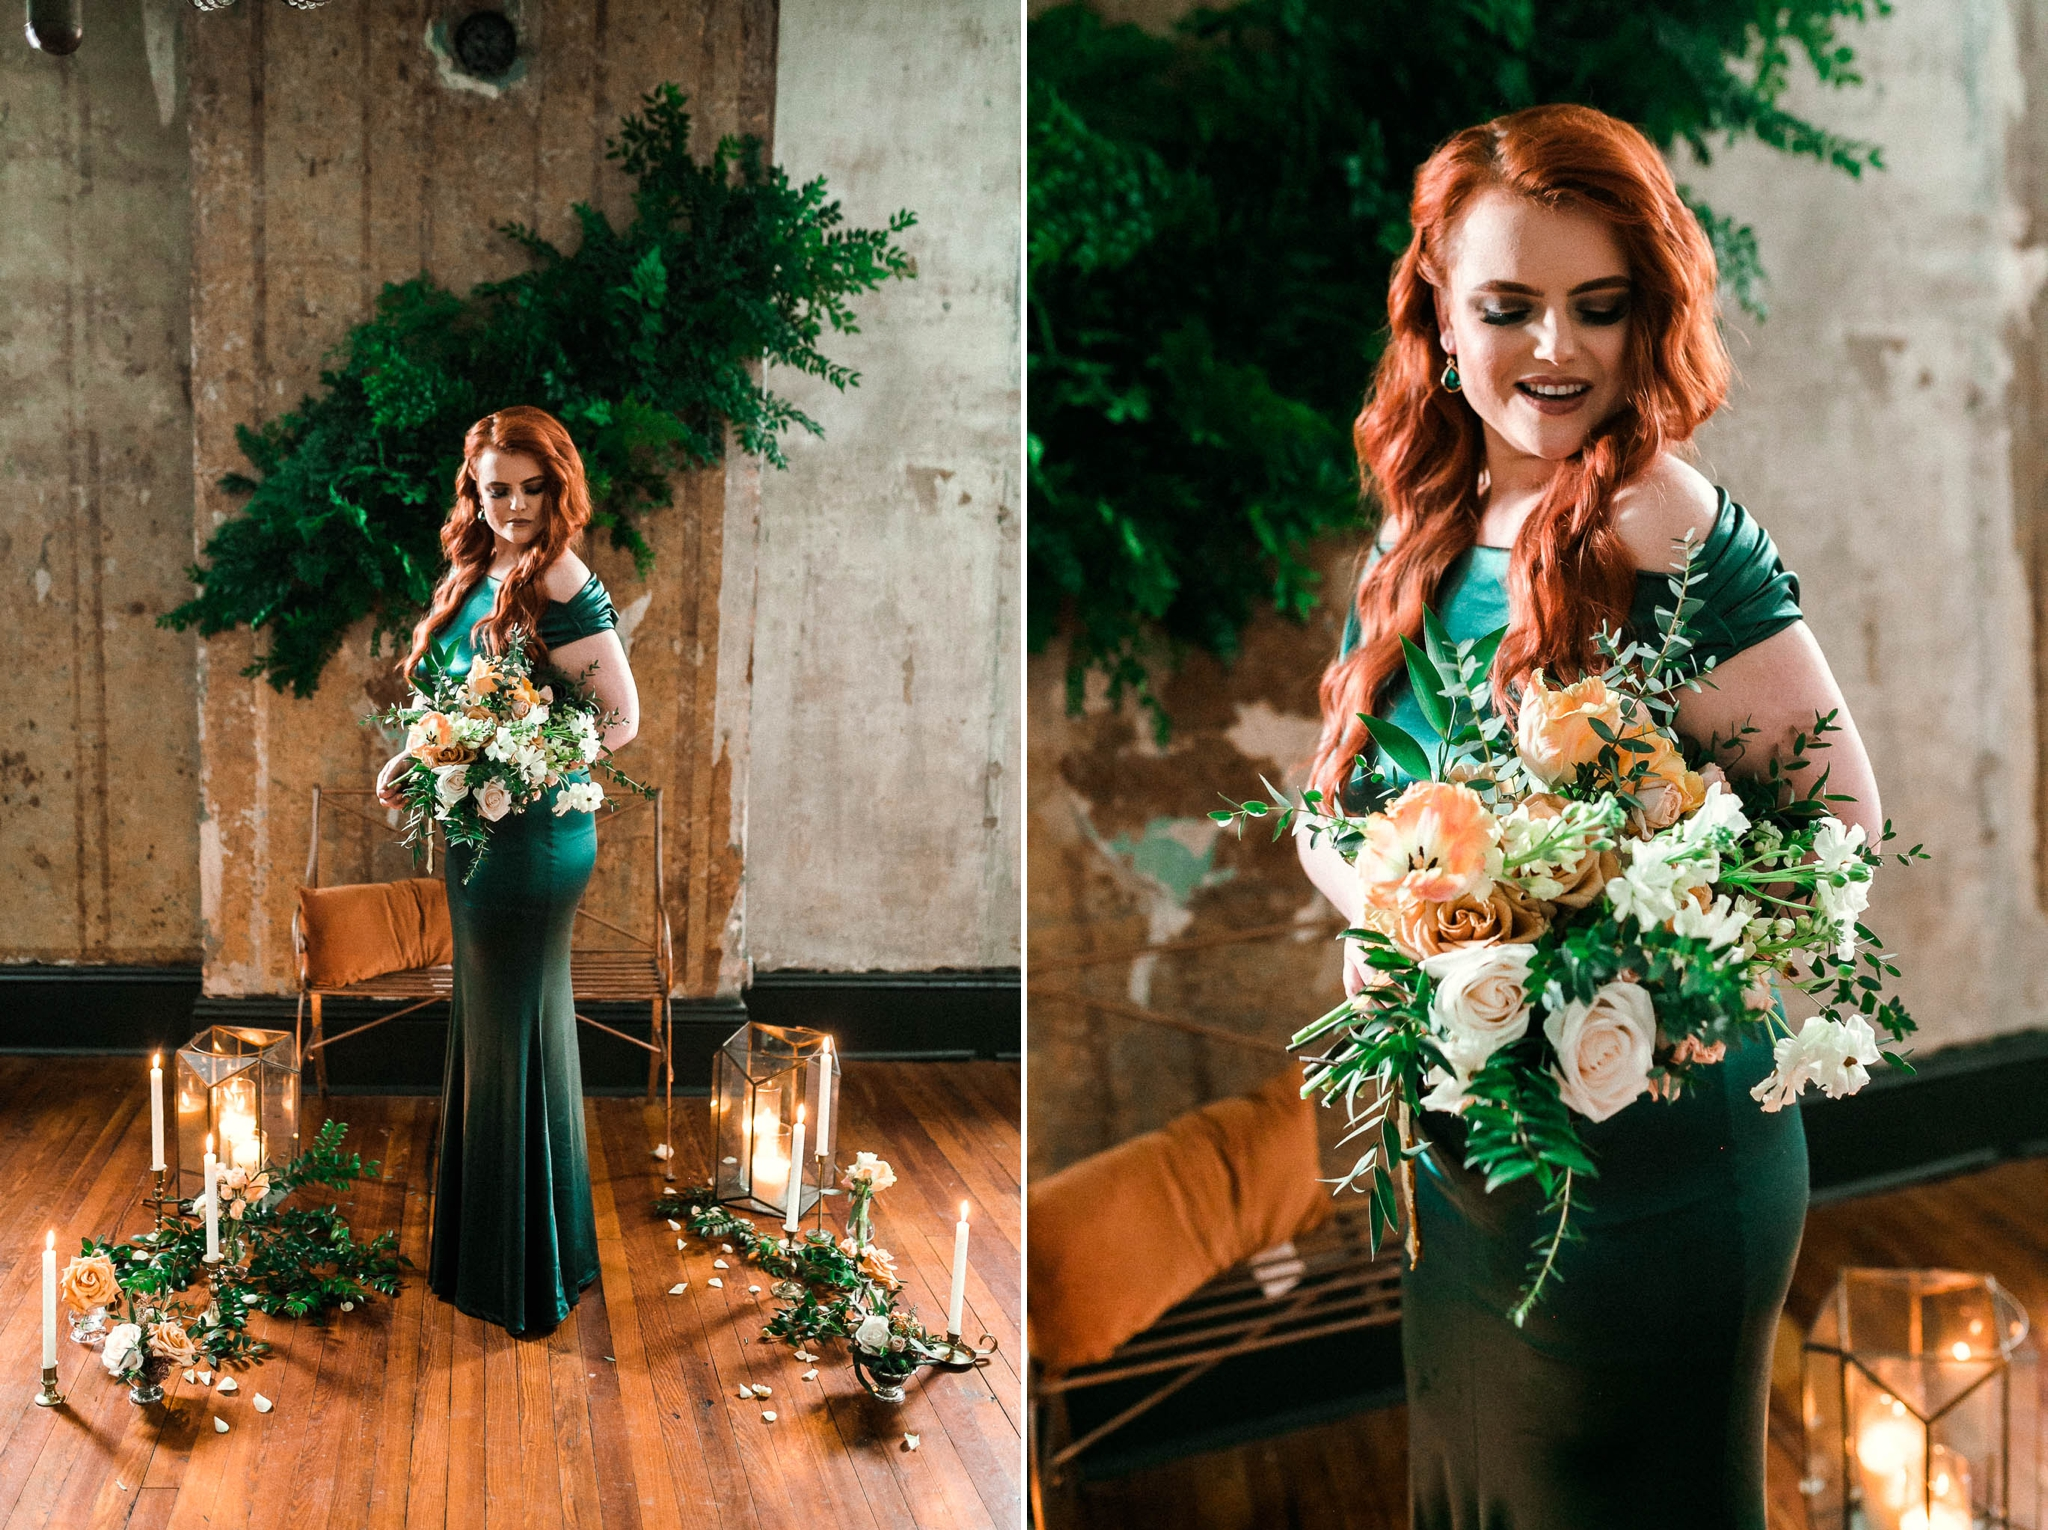 Indoor Portraits of the Red Headed Bride in an unique Emerald Wedding Dress standing up with her Bouquet in front of a floral display - Oahu Wedding Photographer